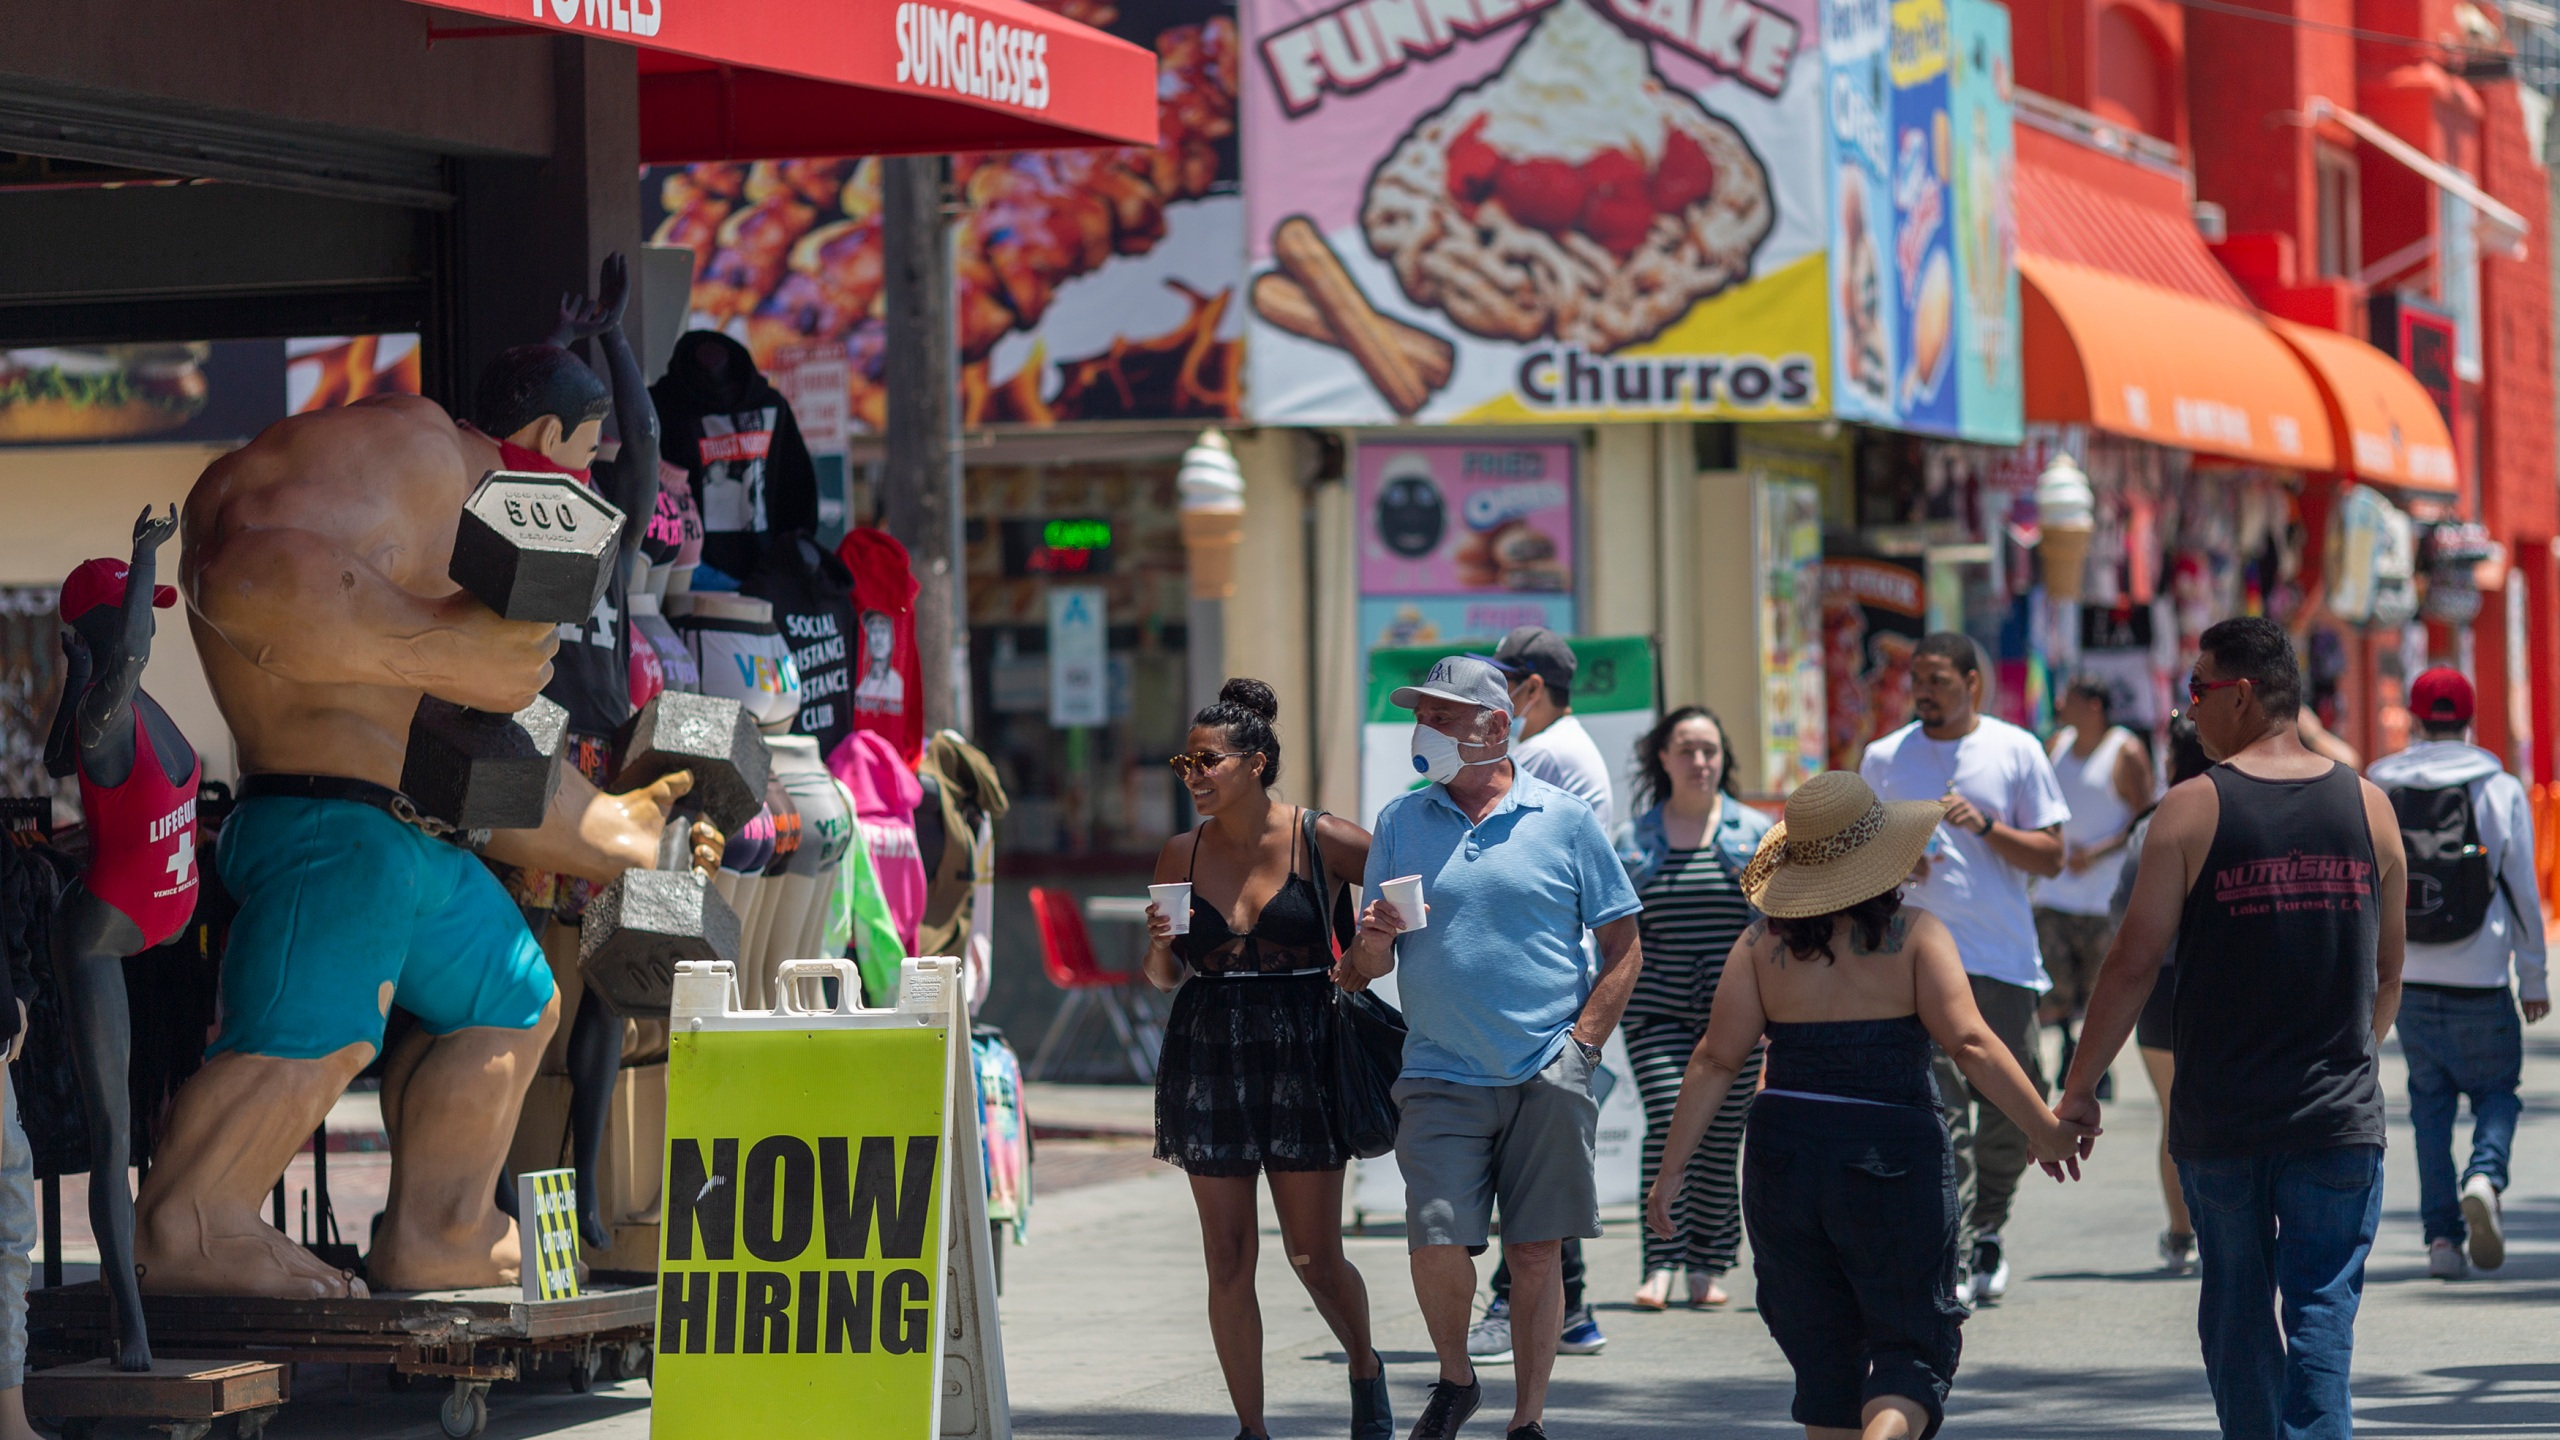 Holiday beachgoers head to Venice Beach on Memorial Day as coronavirus safety restrictions continue being relaxed in Los Angeles County on May 24, 2020. (David McNew/Getty Images)